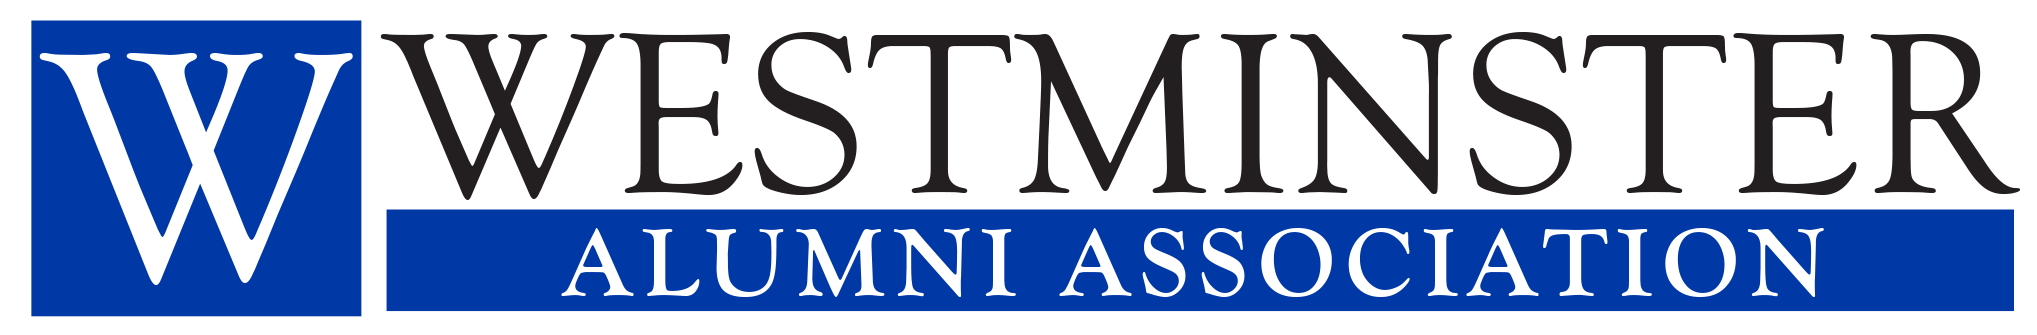 alumni association horizontal logo | Westminster